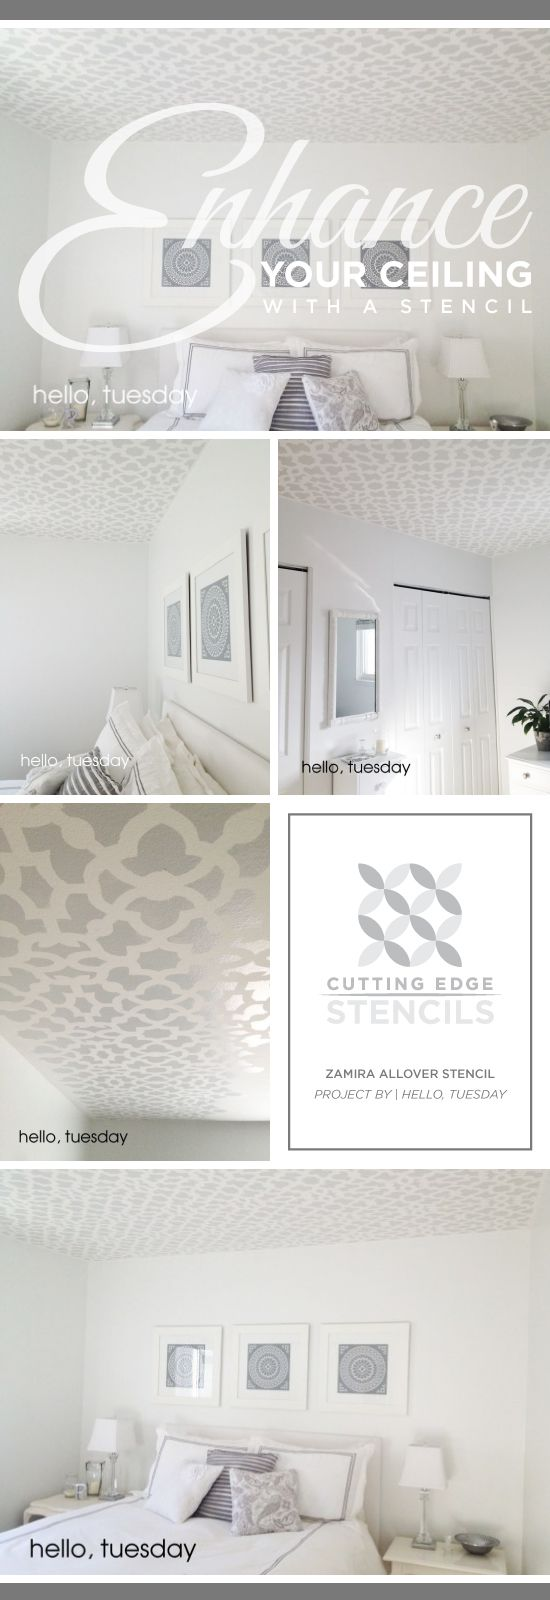 A gray stenciled bedroom ceiling using the Zamira Allover Stencil. http://www.cuttingedgestencils.com/moroccan-stencil-designs.html #cuttingedgestencils #stencils #stenciling #wallstencils #diy #bedroom #ceiling